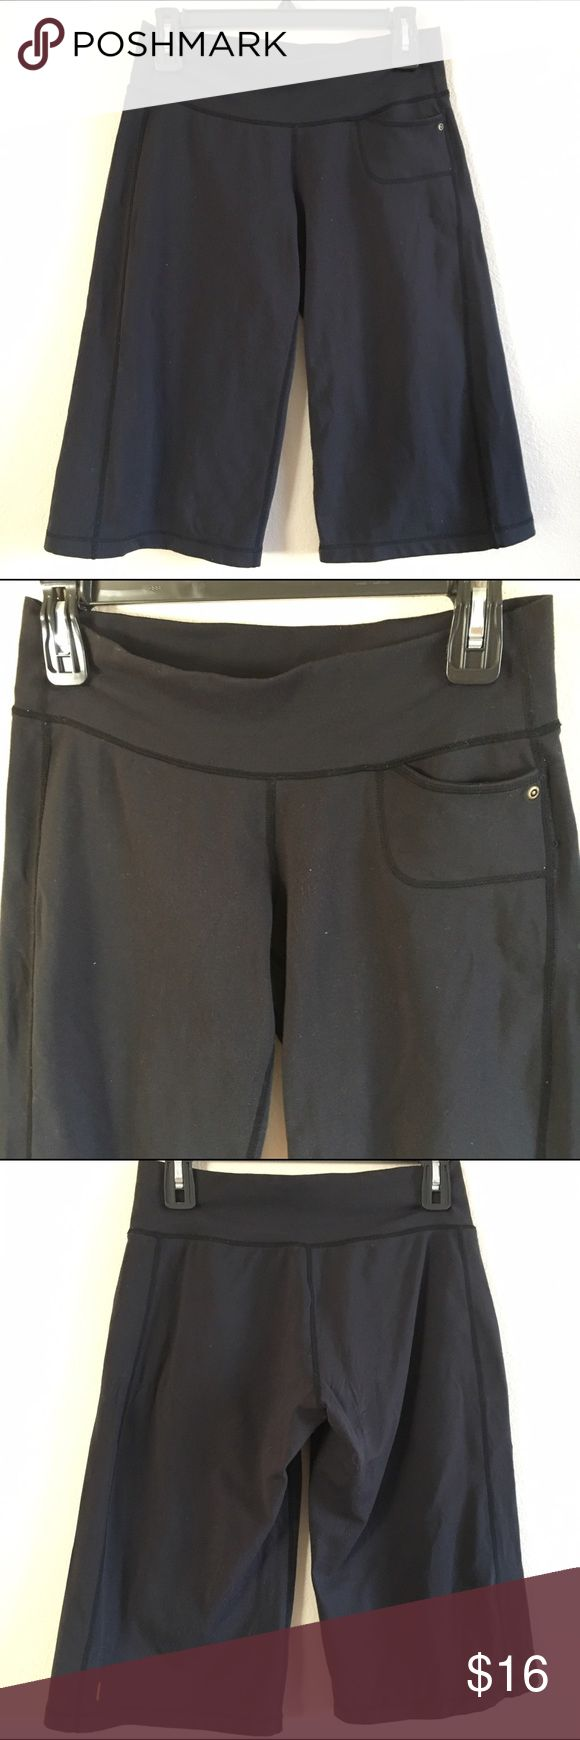 Lucy Yoga Capri Pant size small This Everyday Lucy Yoga Capri Pant is size small in good pre-loved condition. Selling for a friend but offers welcome! Pants have some piling but still lots of life left in them! Lucy Pants Capris